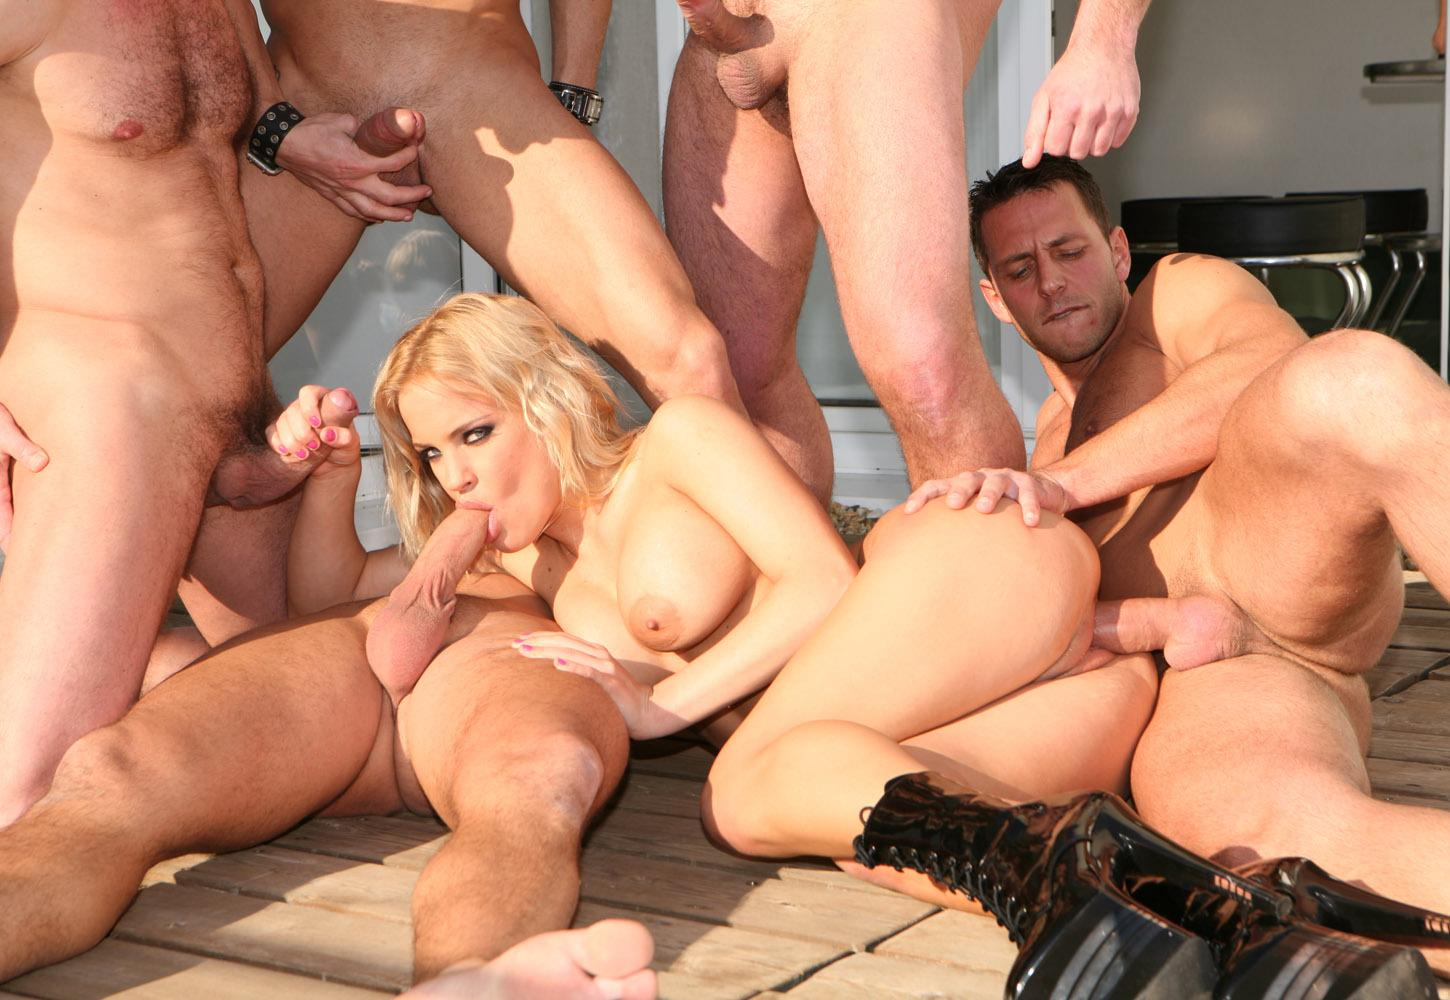 large-gang-bang-video-amanda-donohoe-pantyhose